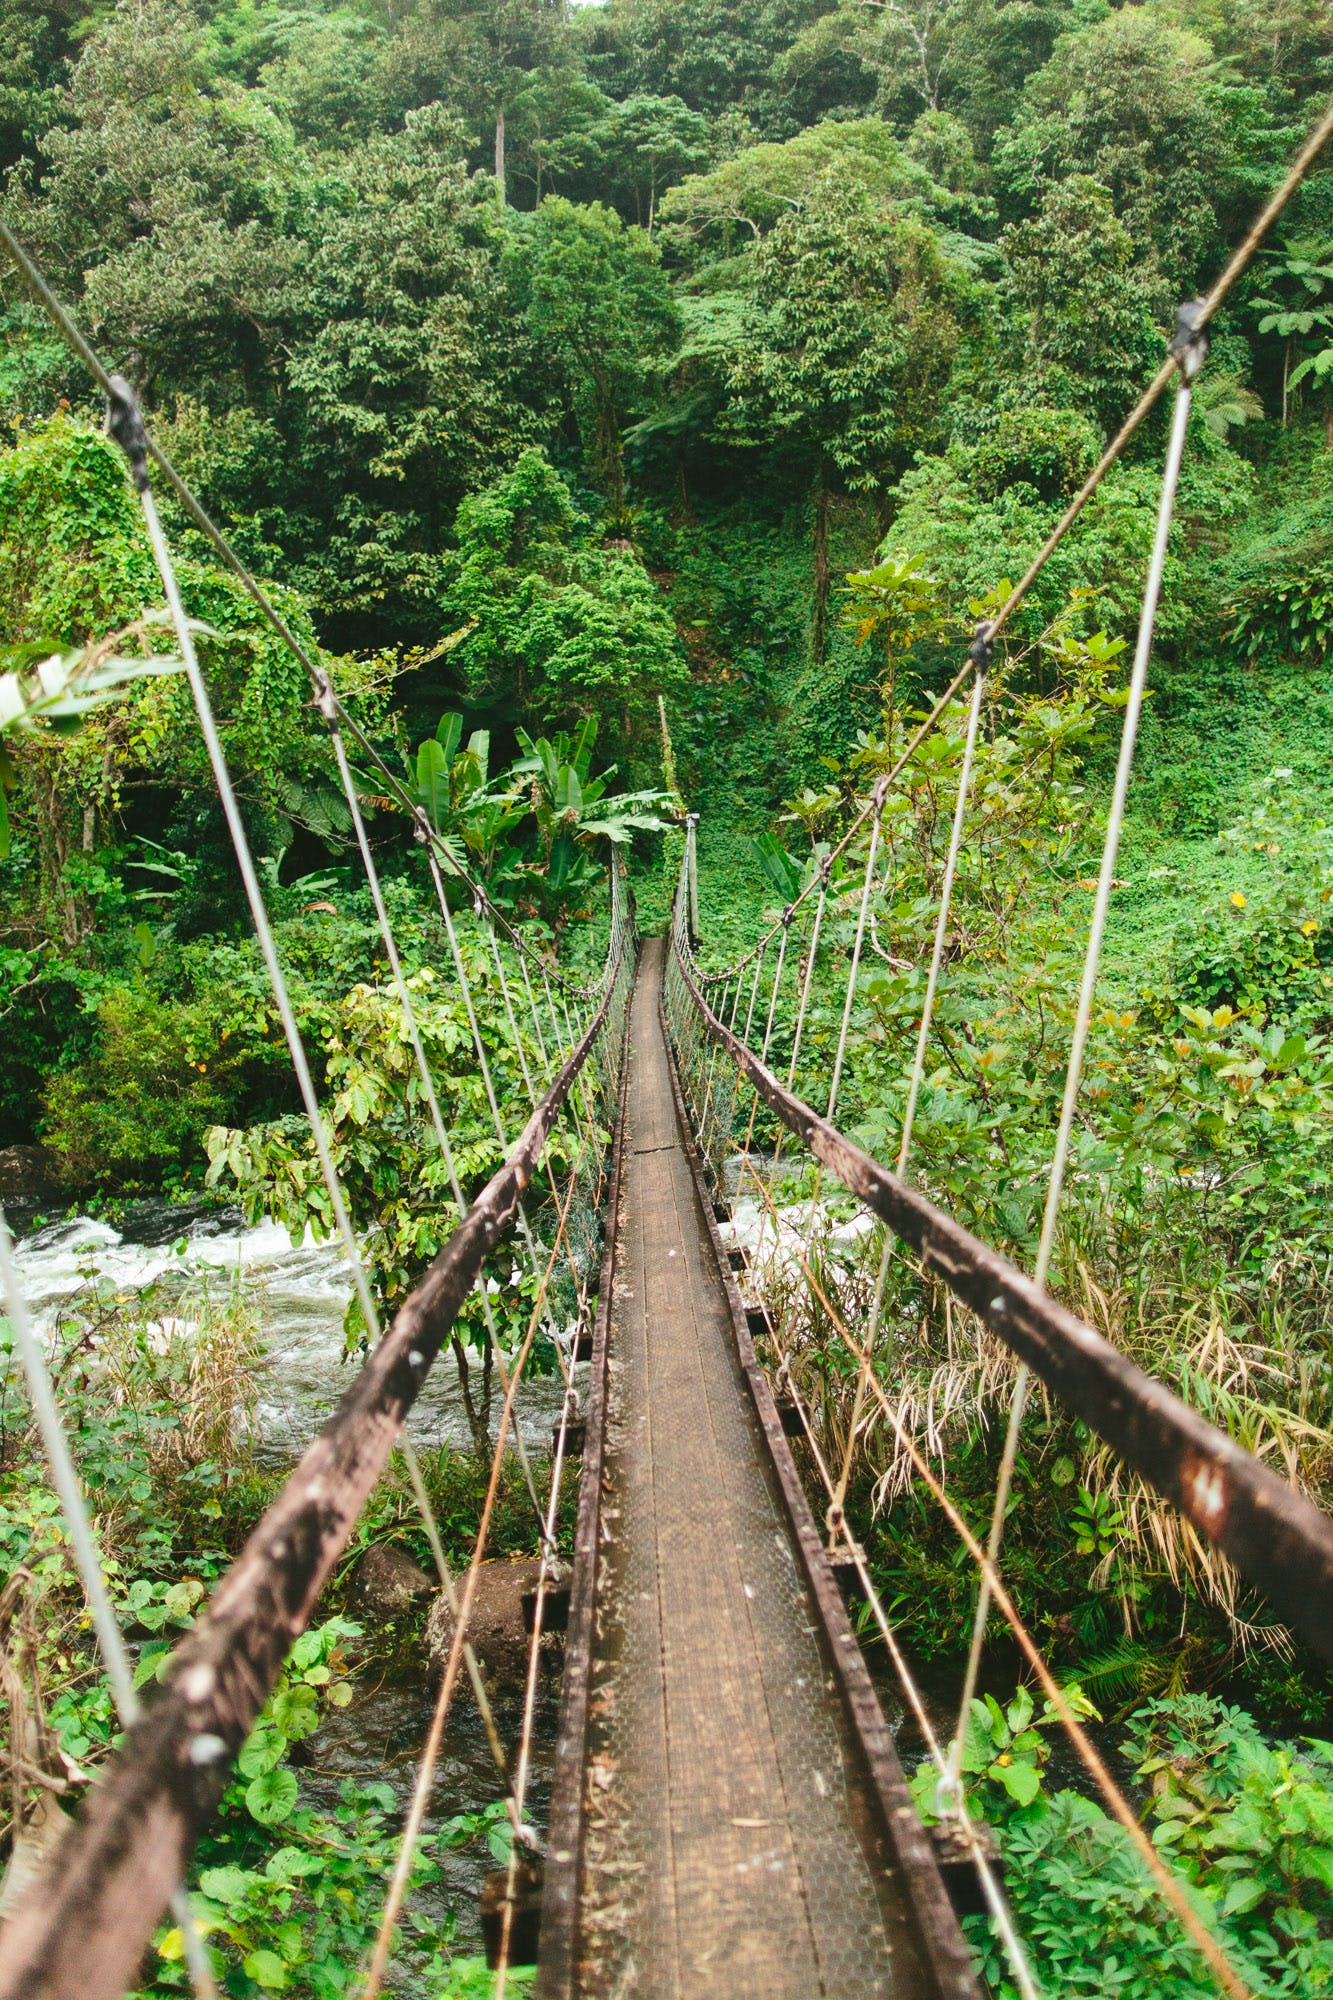 Swinging bridge on the Lavena Coastal Walk - The Remote Resort Fiji Islands